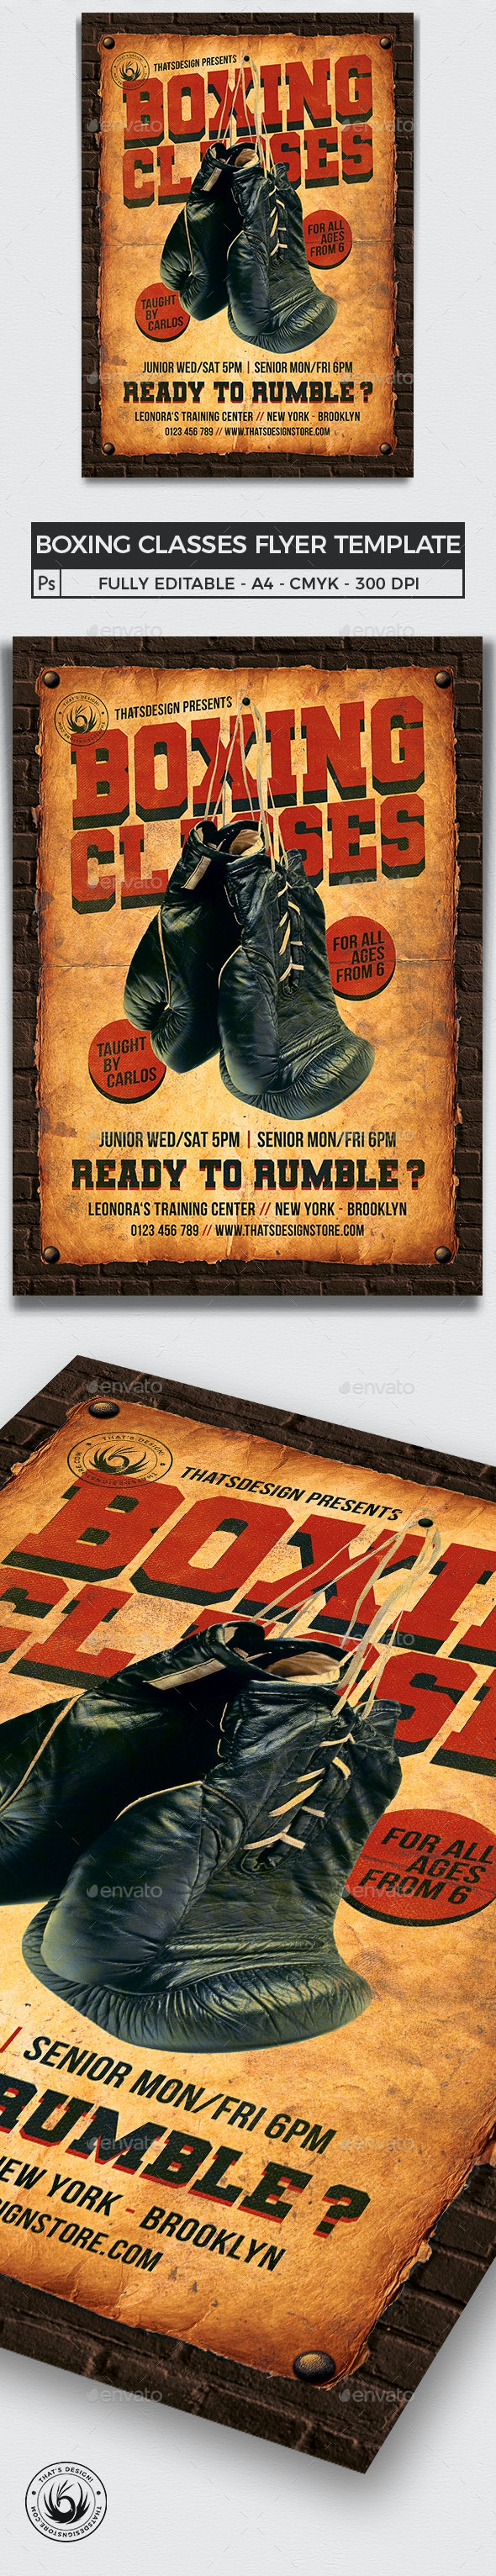 Vintage Boxing Classes Flyer Template - Sports Events